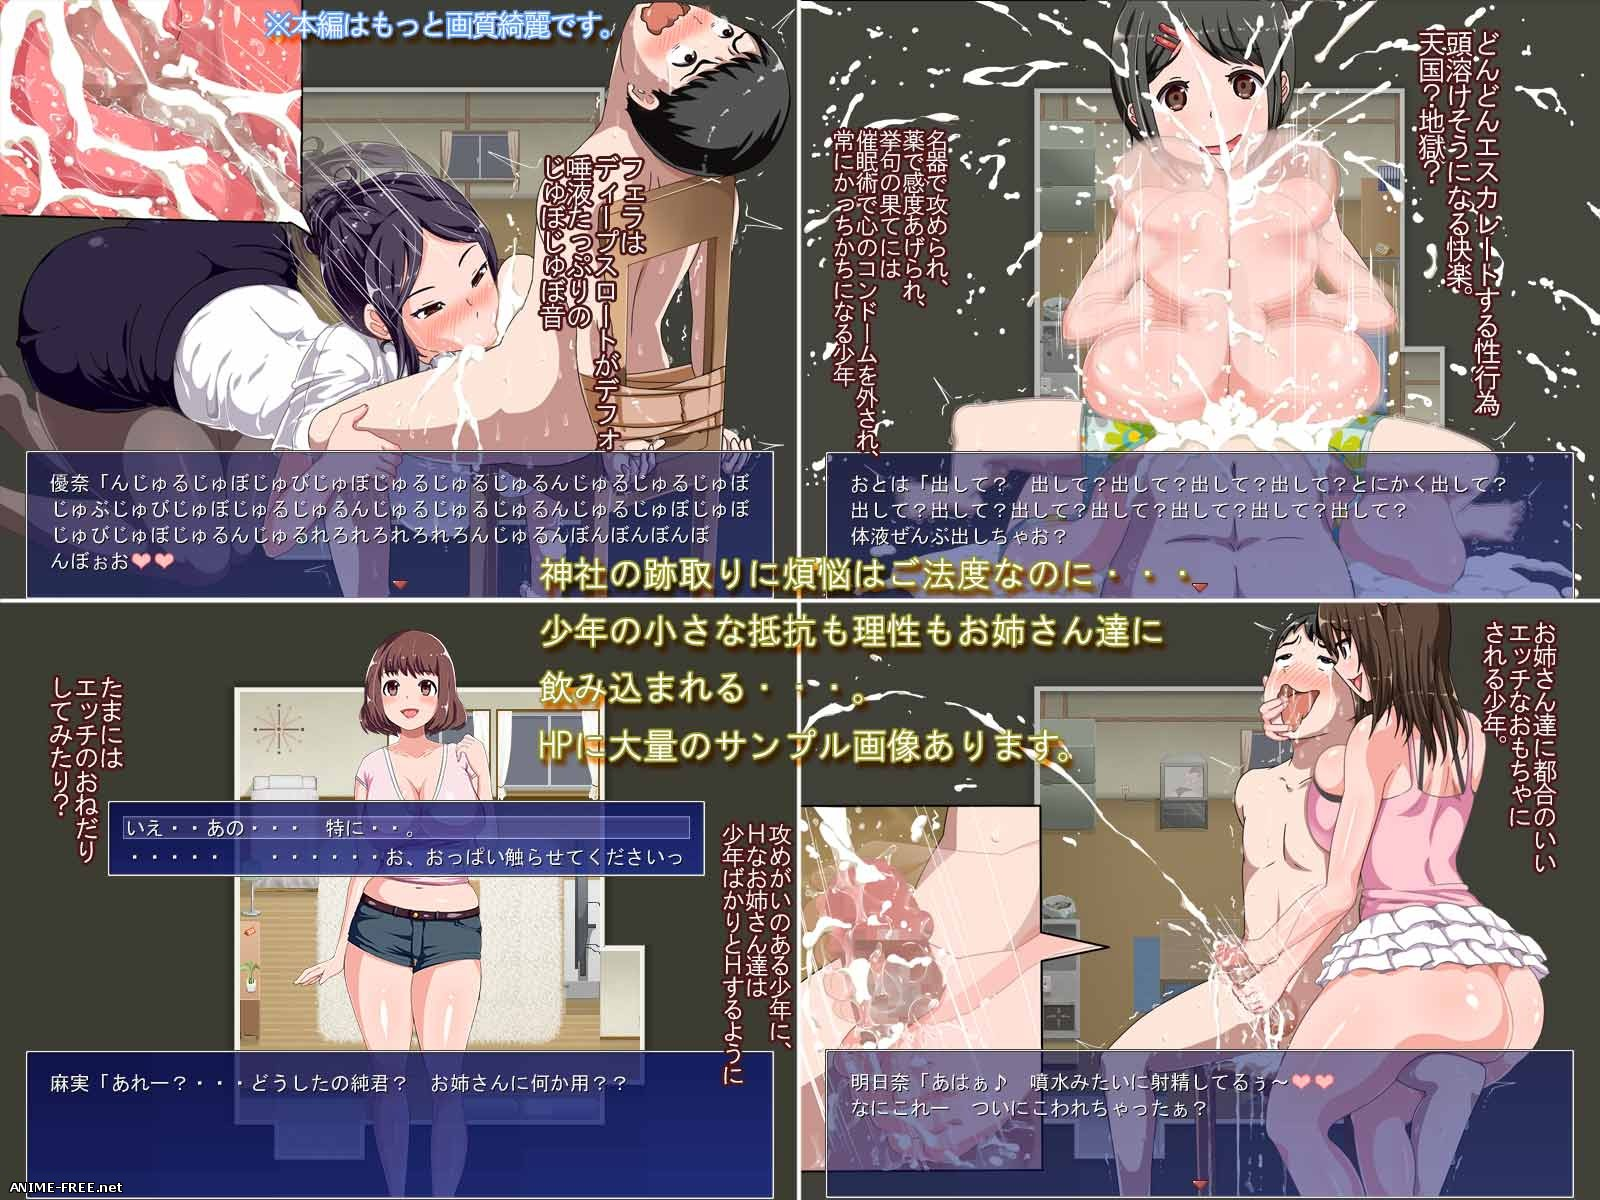 Slut boy & Older sisters Reaches Of Happiness H I Living Apartment [2014] [Cen] [jRPG] [JAP] H-Game